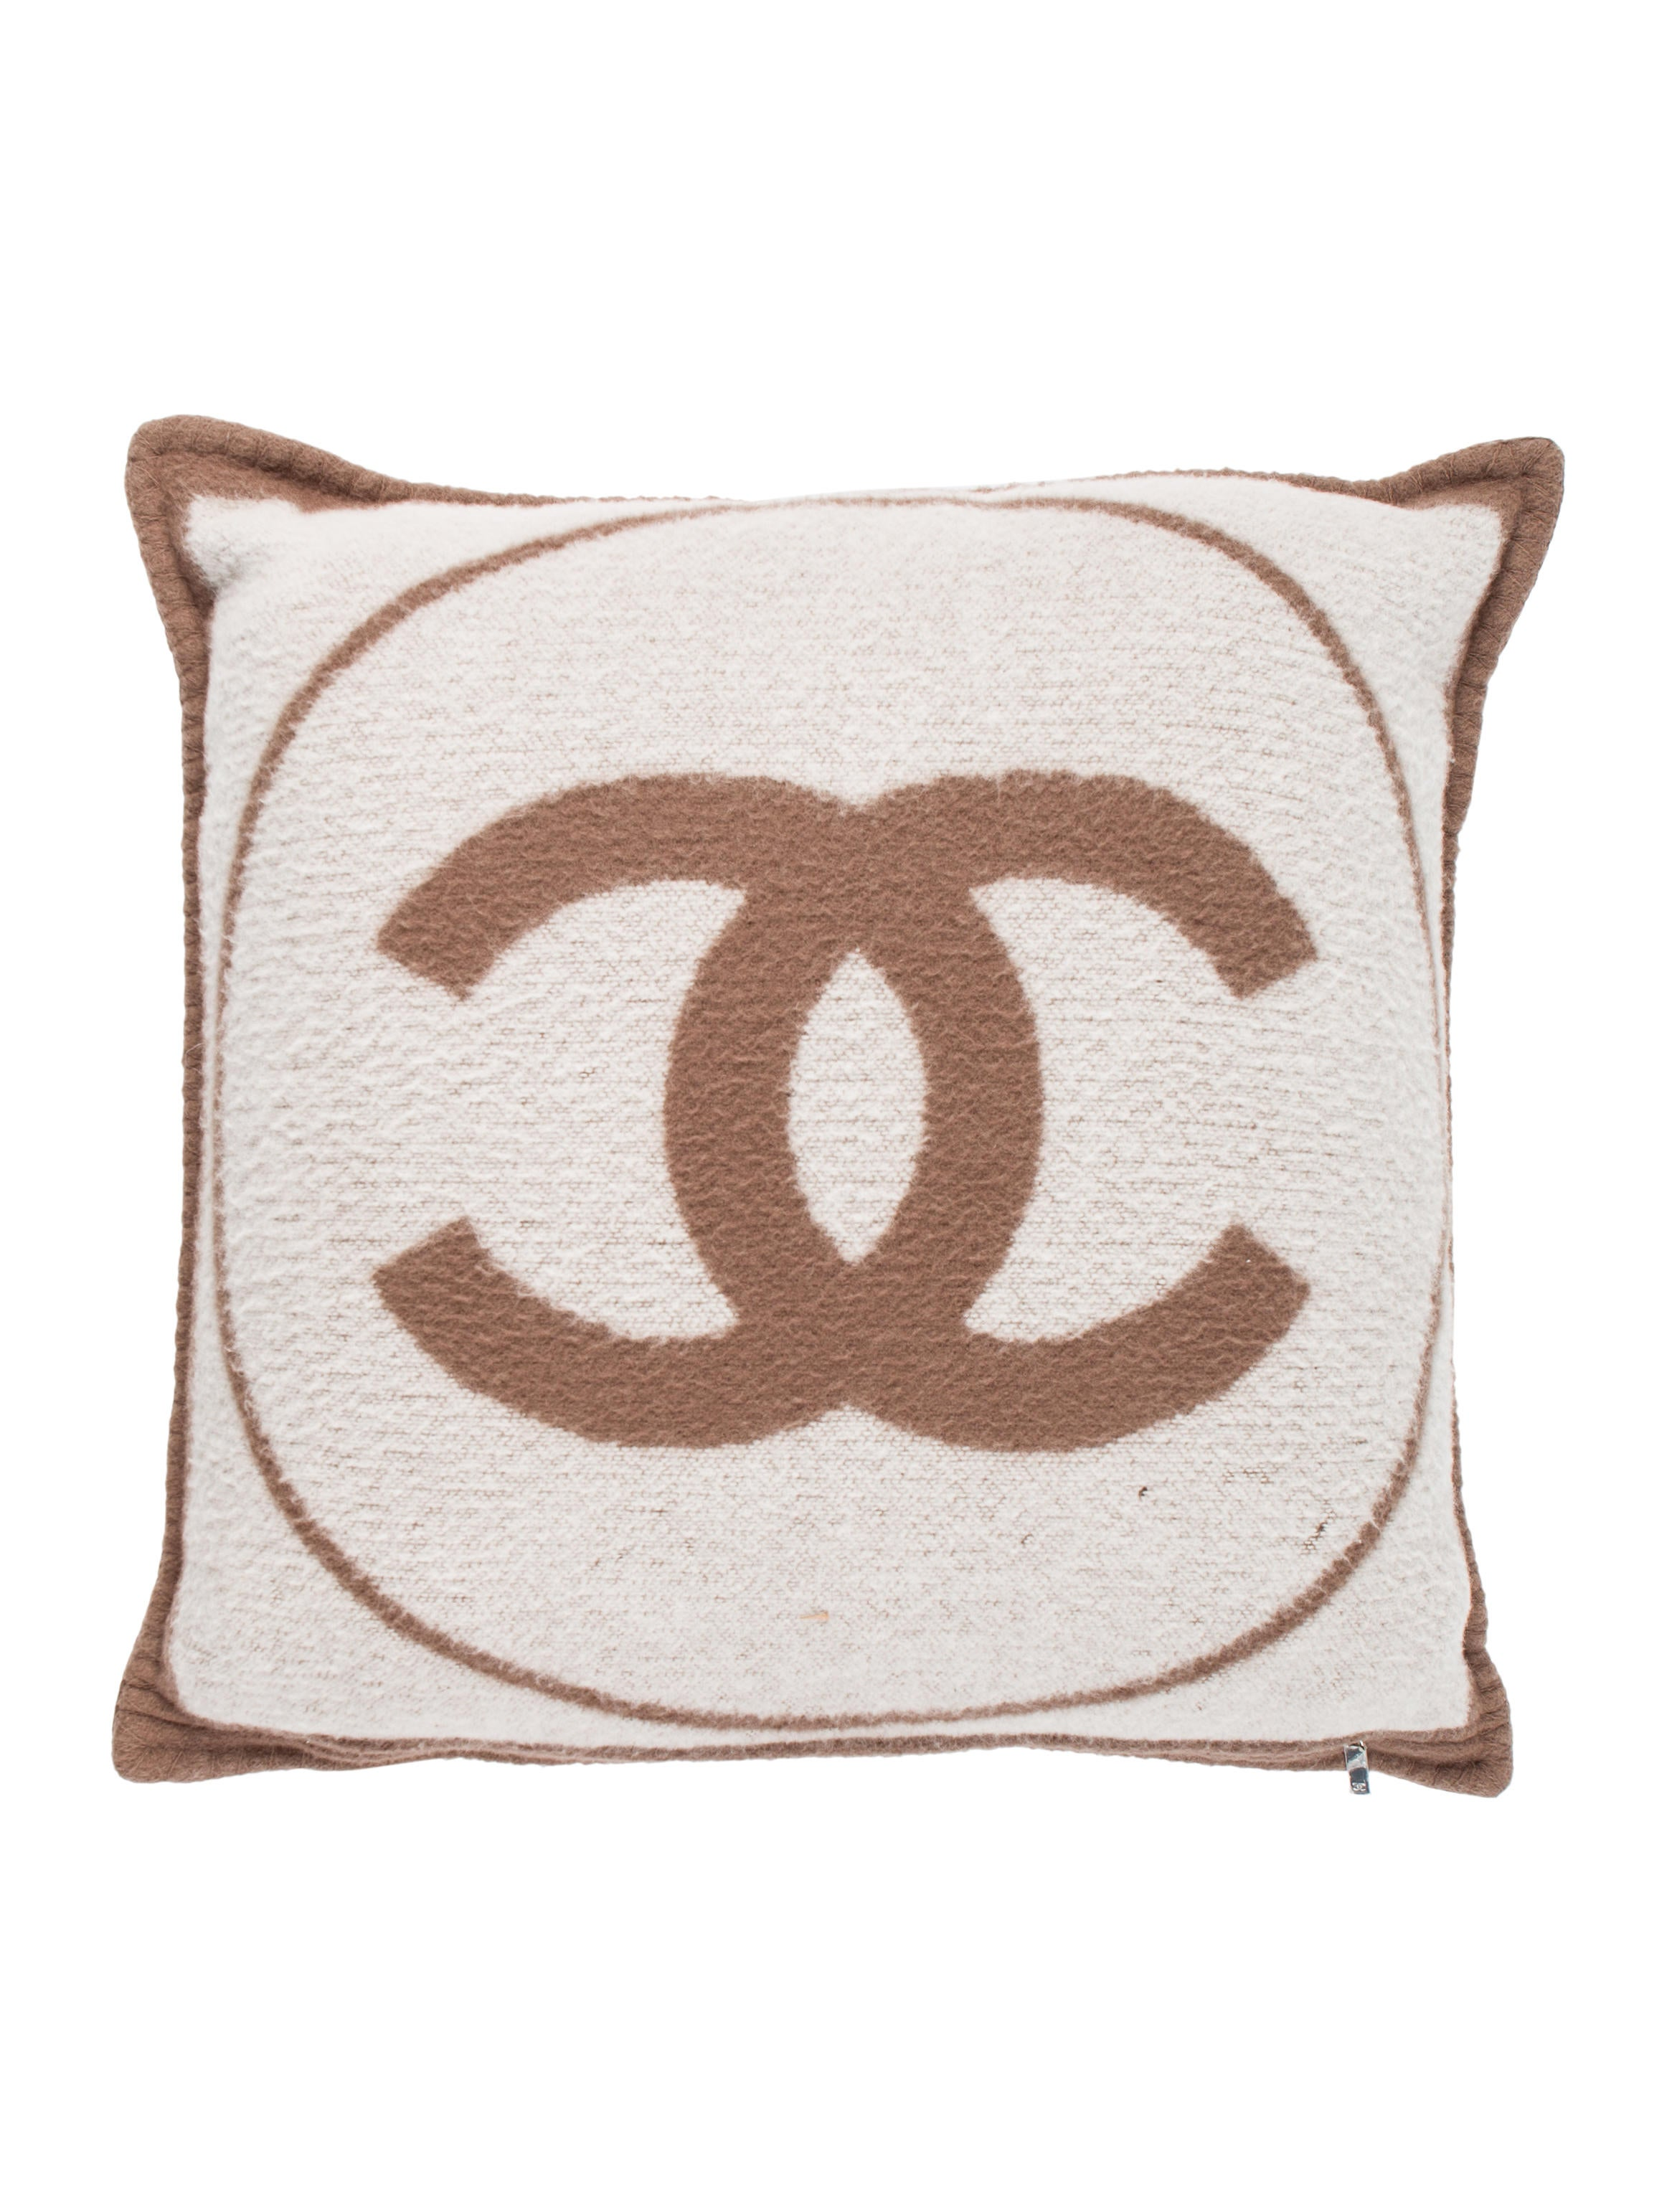 Black Chanel Throw Pillow : Chanel Wool & Cashmere Throw Pillow - Pillows And Throws - CHA229259 The RealReal